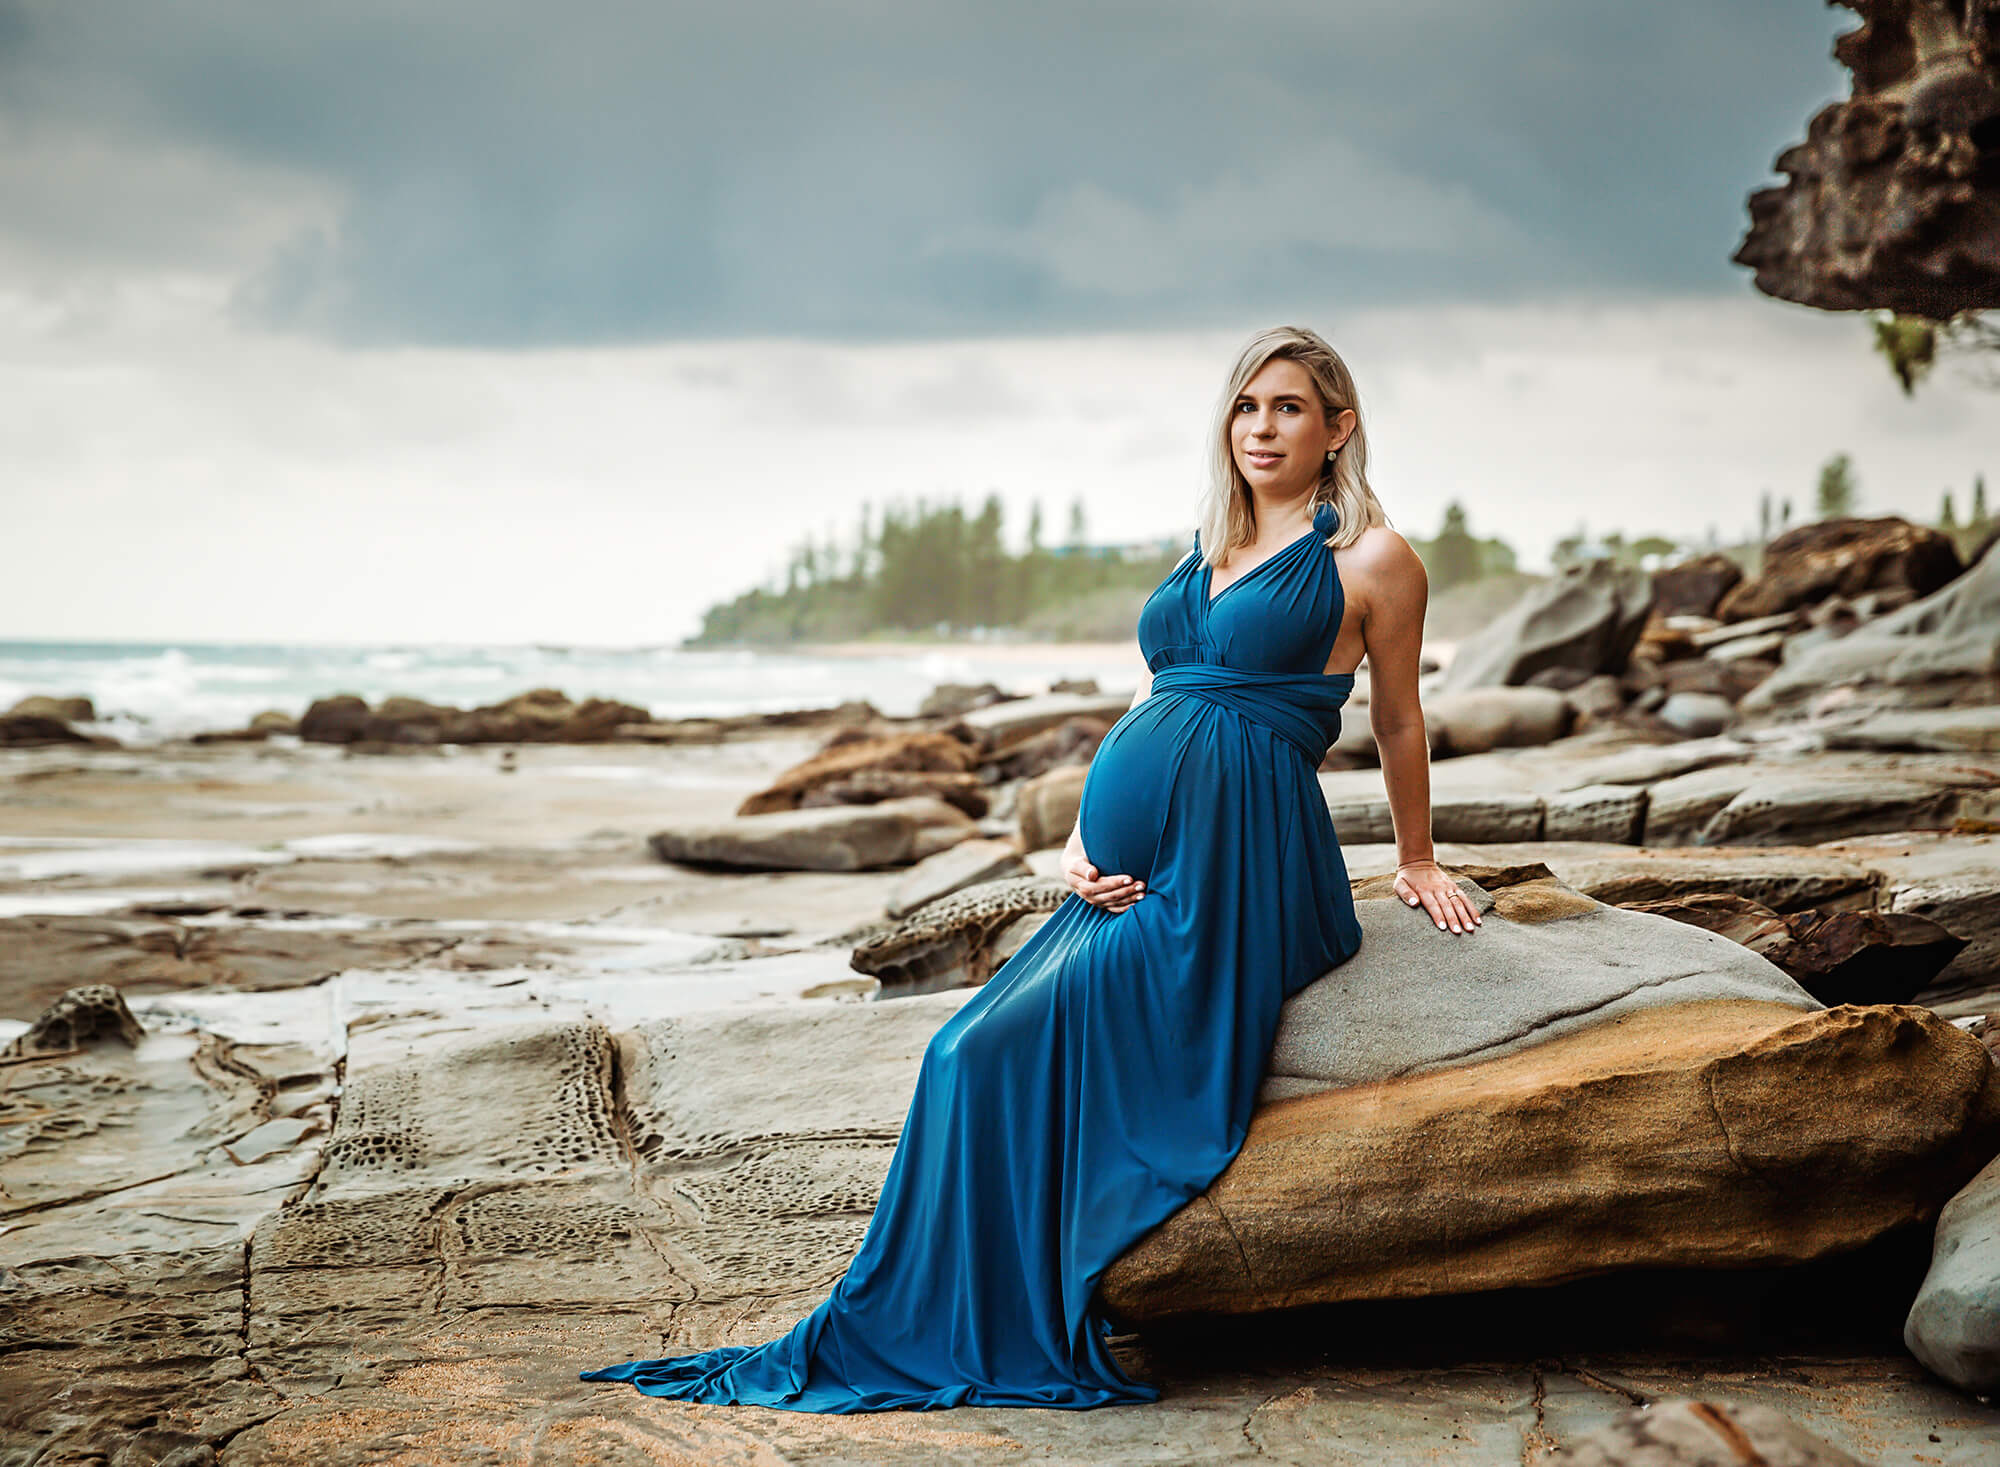 Maternity photo session of a pregnant mother at 36 weeks gestation wearing a stunning dusty blue maternity gown sitting on rocks at shelley beach caloundra